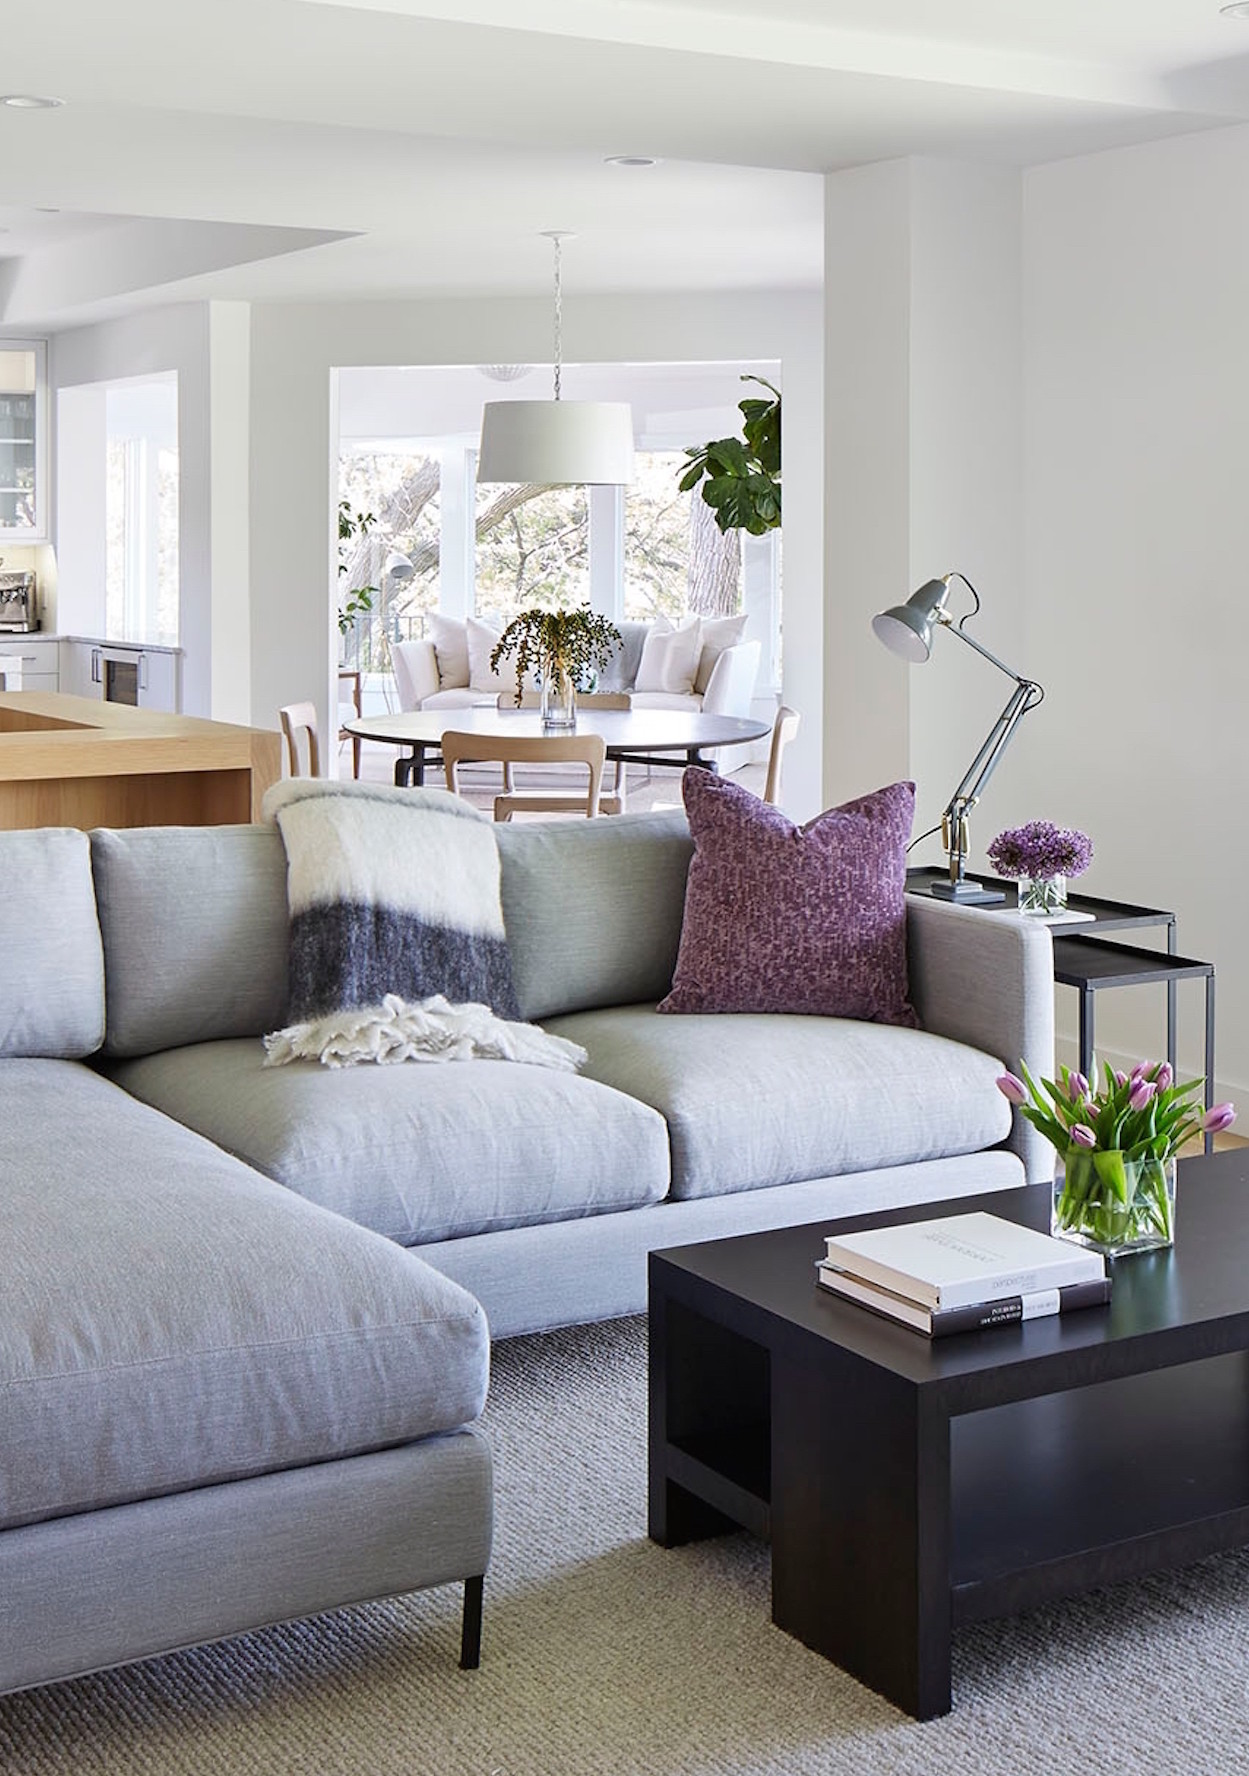 11 Living Room Decorating Ideas Every Homeowner Should Know Martha